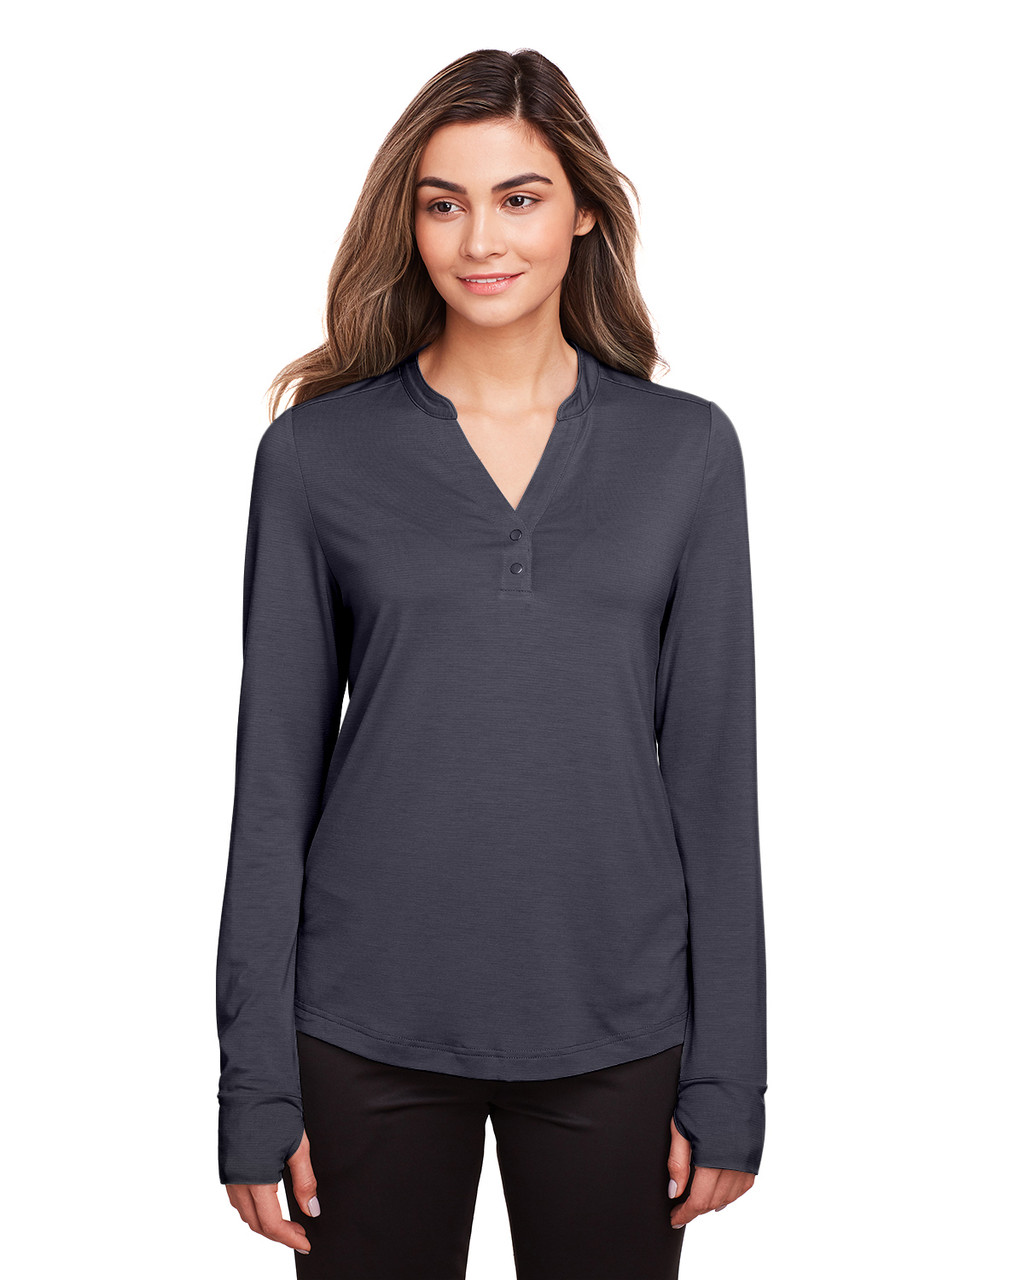 Carbon - NE400W North End Ladies' Jaq Snap-Up Stretch Performance Pullover Long Sleeve Shirt | BlankClothing.ca